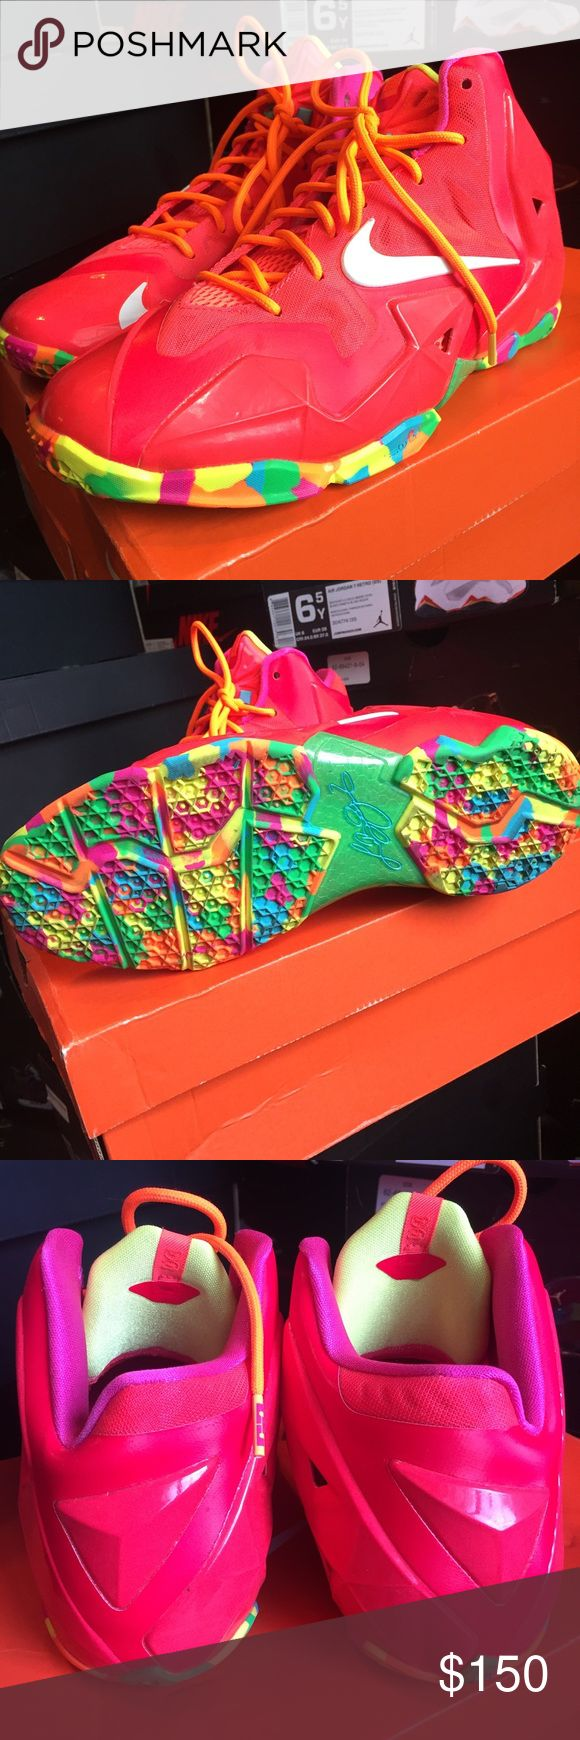 """Lebron """"fruity pebbles"""" Like new condition worn once lebron Shoes Sneakers"""